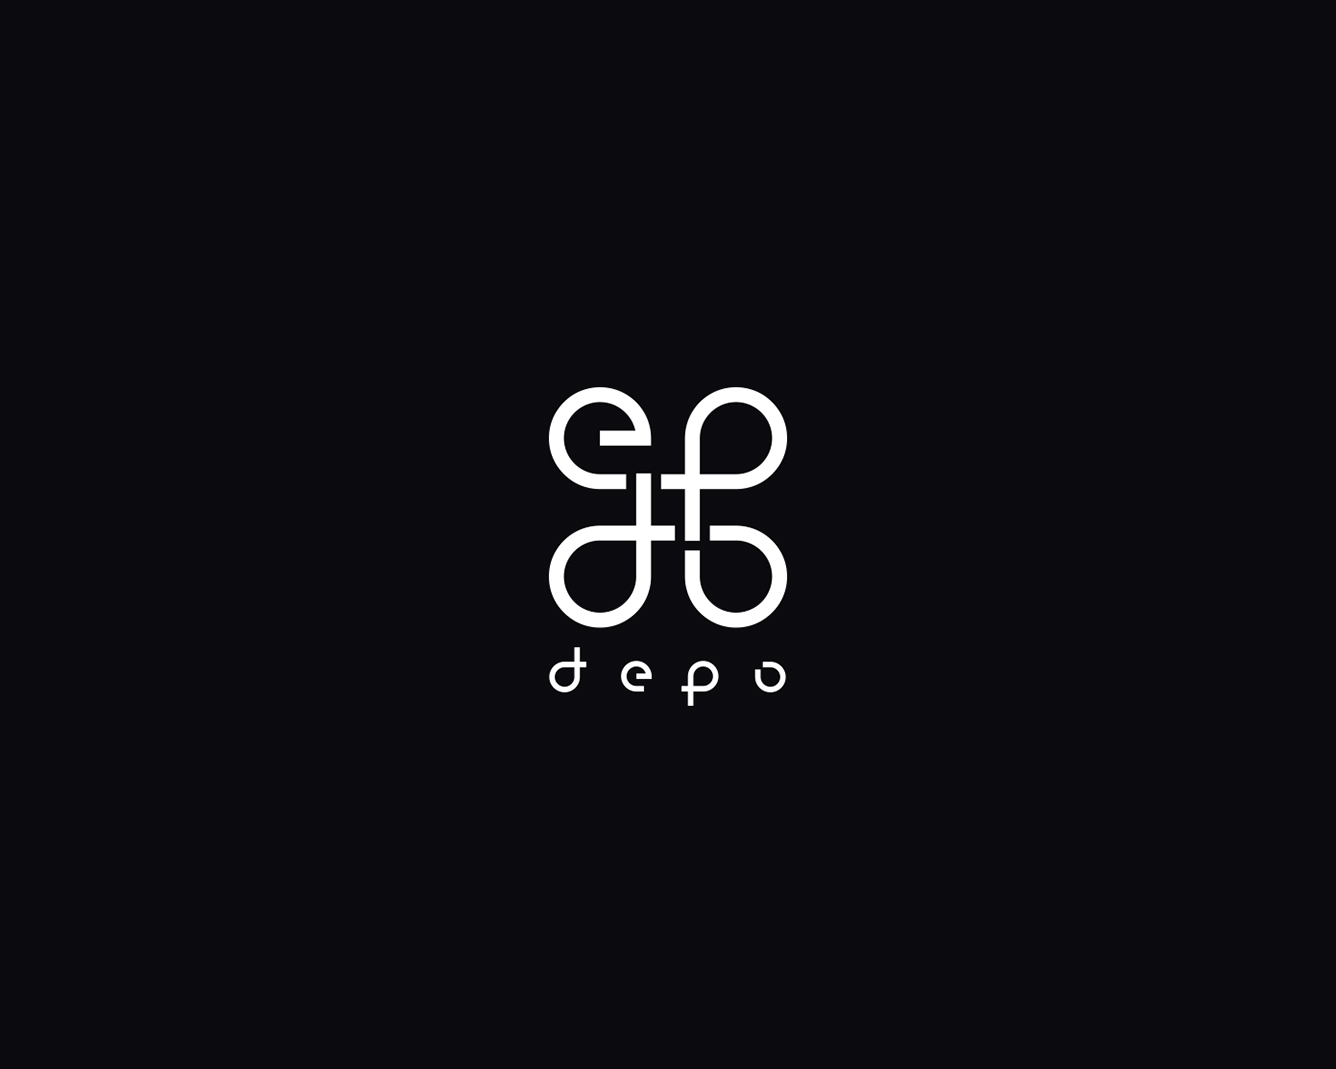 Designer creates logos with hidden meanings - 13